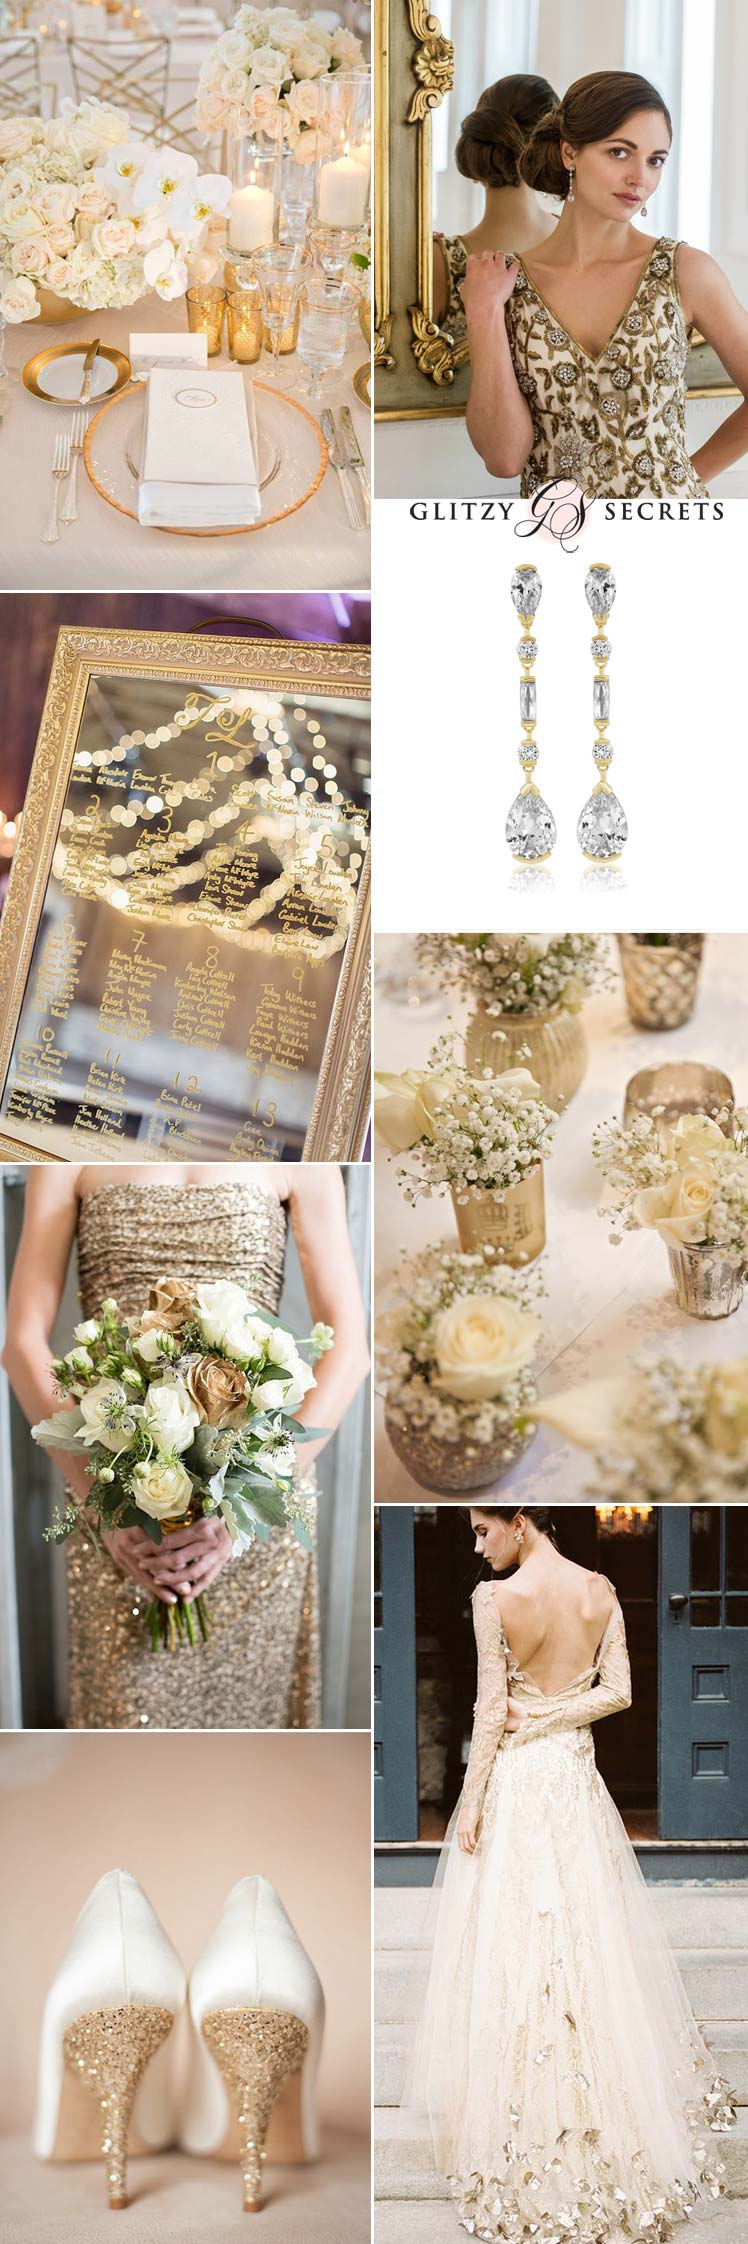 Luxurious cream and gold wedding ideas